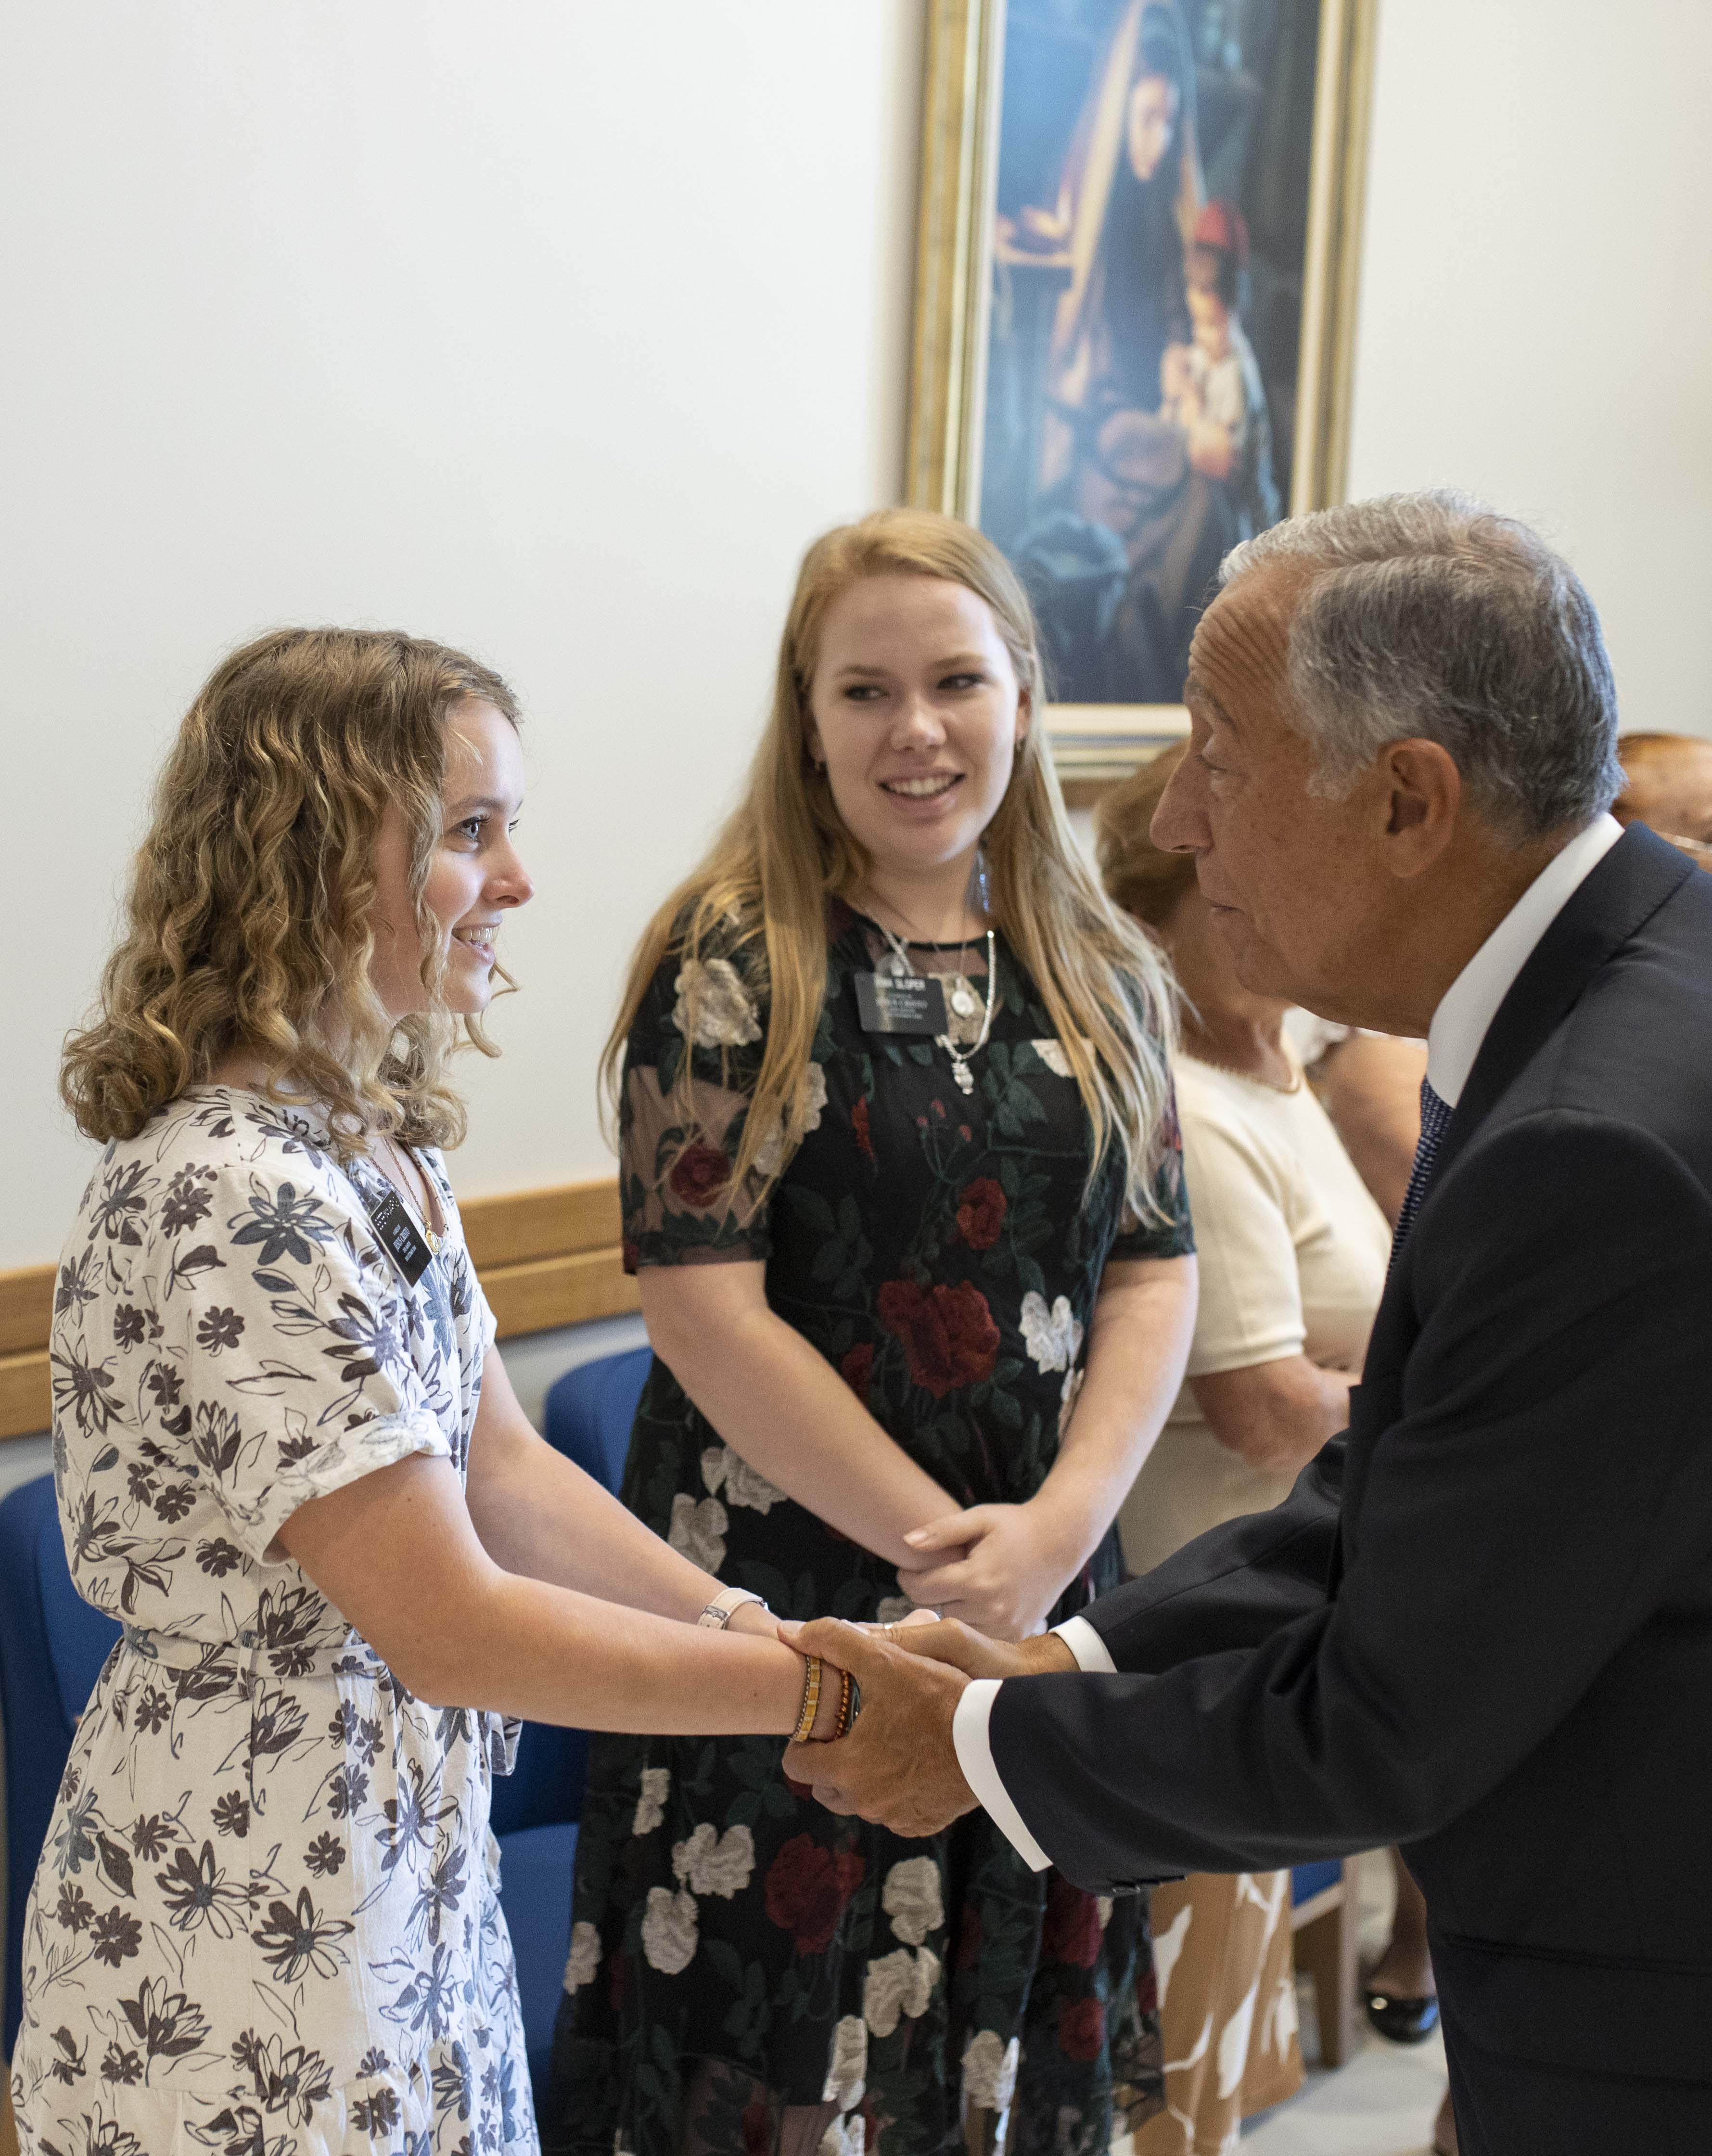 The president of Portugal, Marcelo Rebelo de Sousa, speaks with missionaries of The Church of Jesus Christ of Latter-day Saints who help with the public open house of the Lisbon Portugal Temple on Aug. 29, 2019.